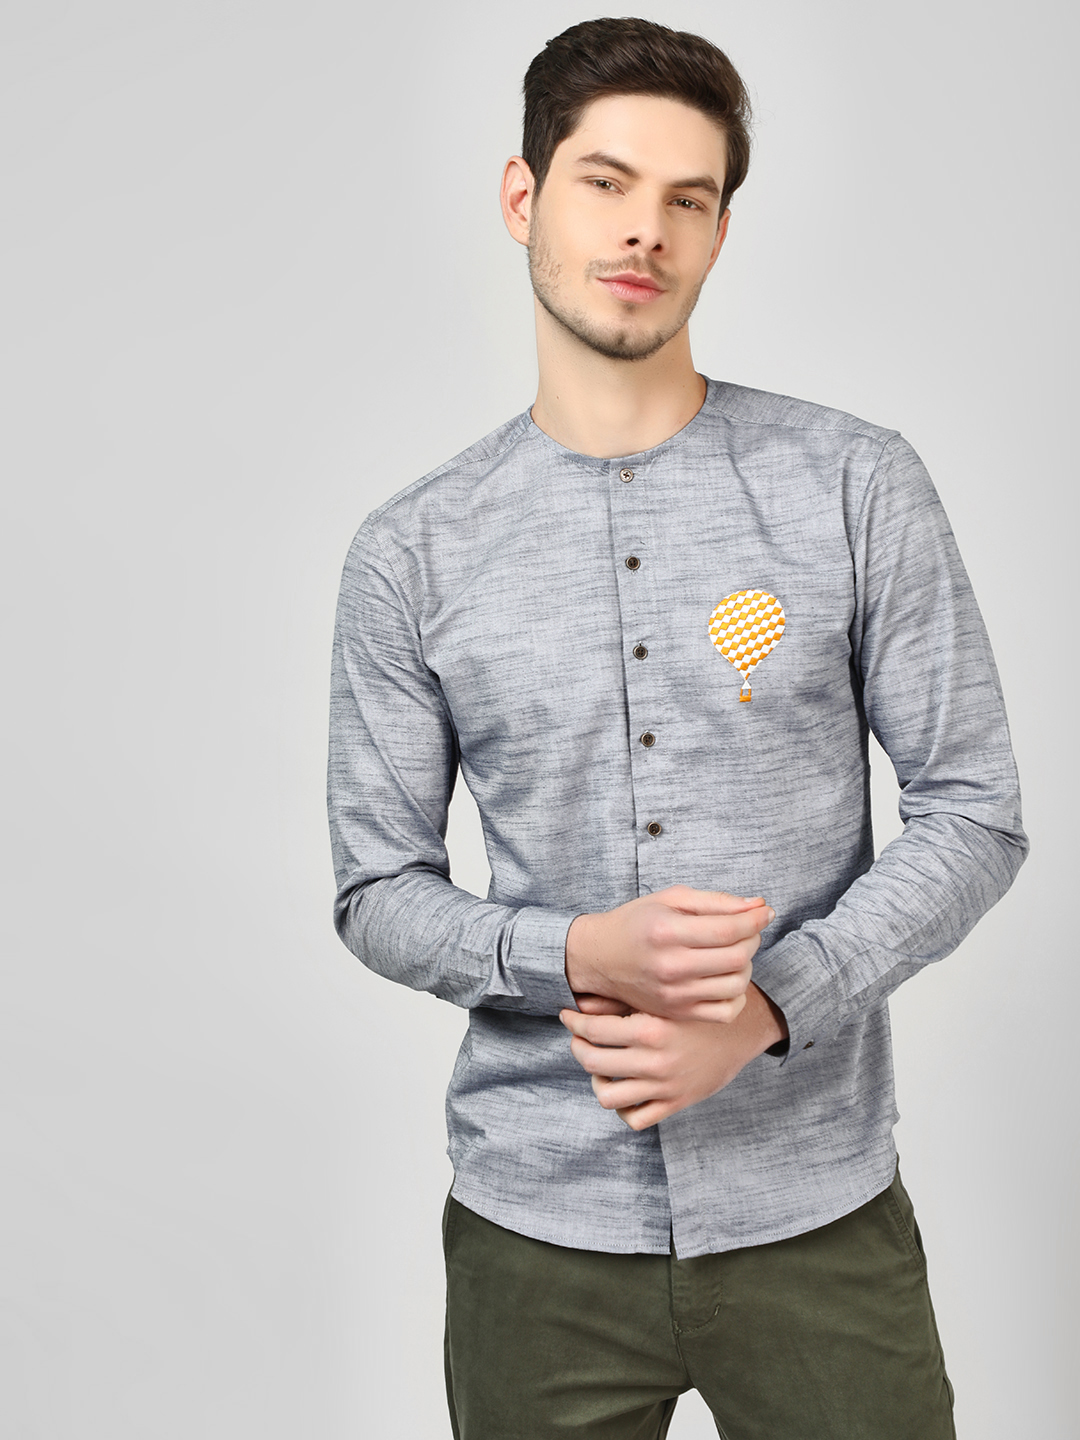 Bolt Of The Good Stuff Grey Grandad Collar Shirt With Embroidery 1